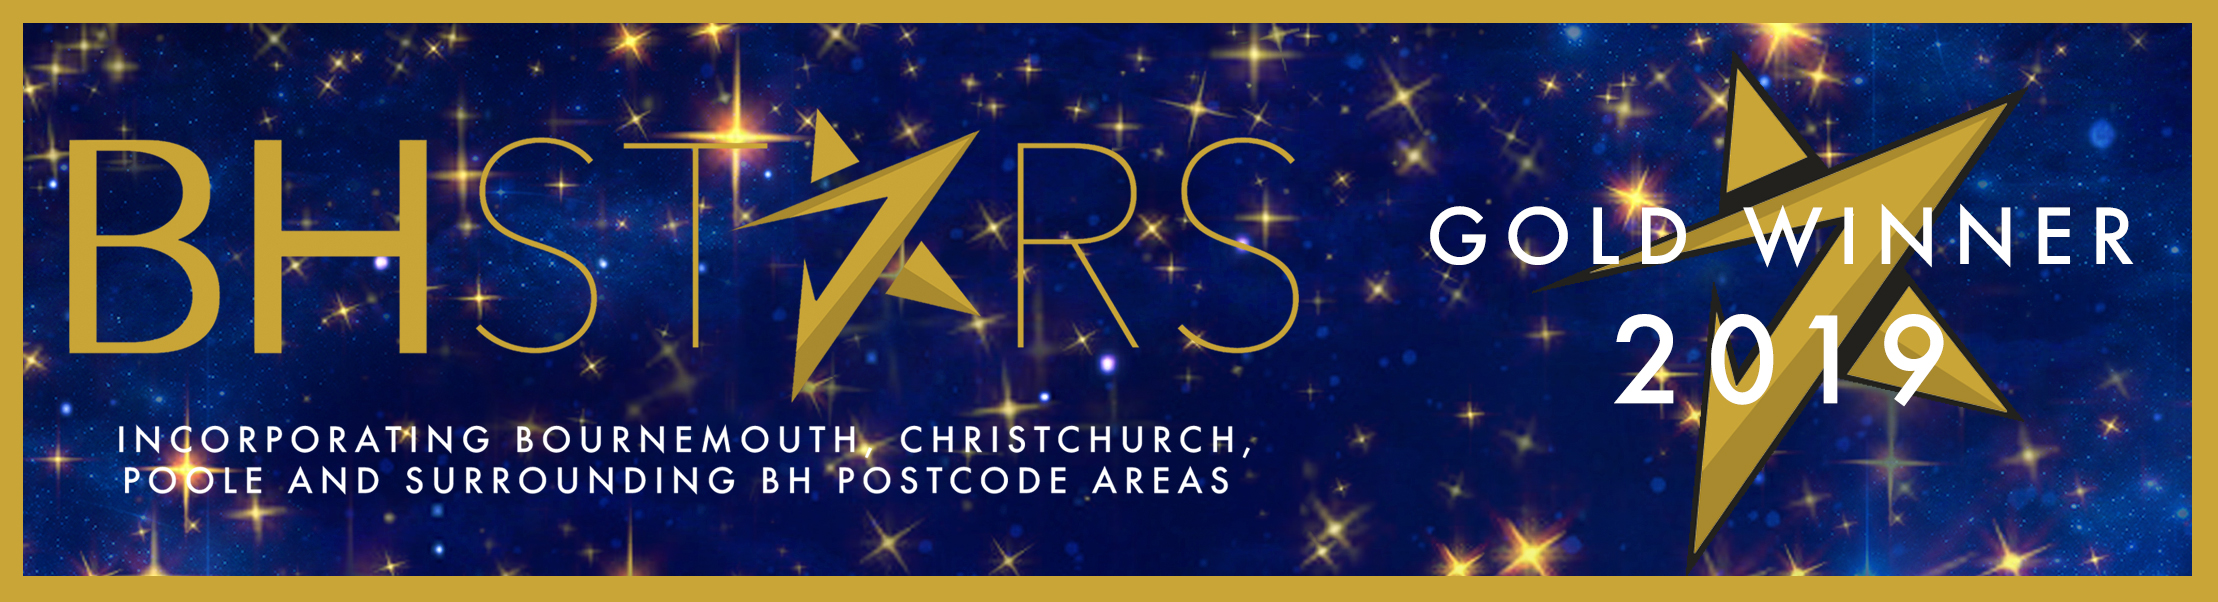 Gold Award, winners, win, BH Stars, best night out, poole, dorset, Night Time Award, Bournemouth Tourism awards,Poole, BAPTAs, best night out, show, dorset